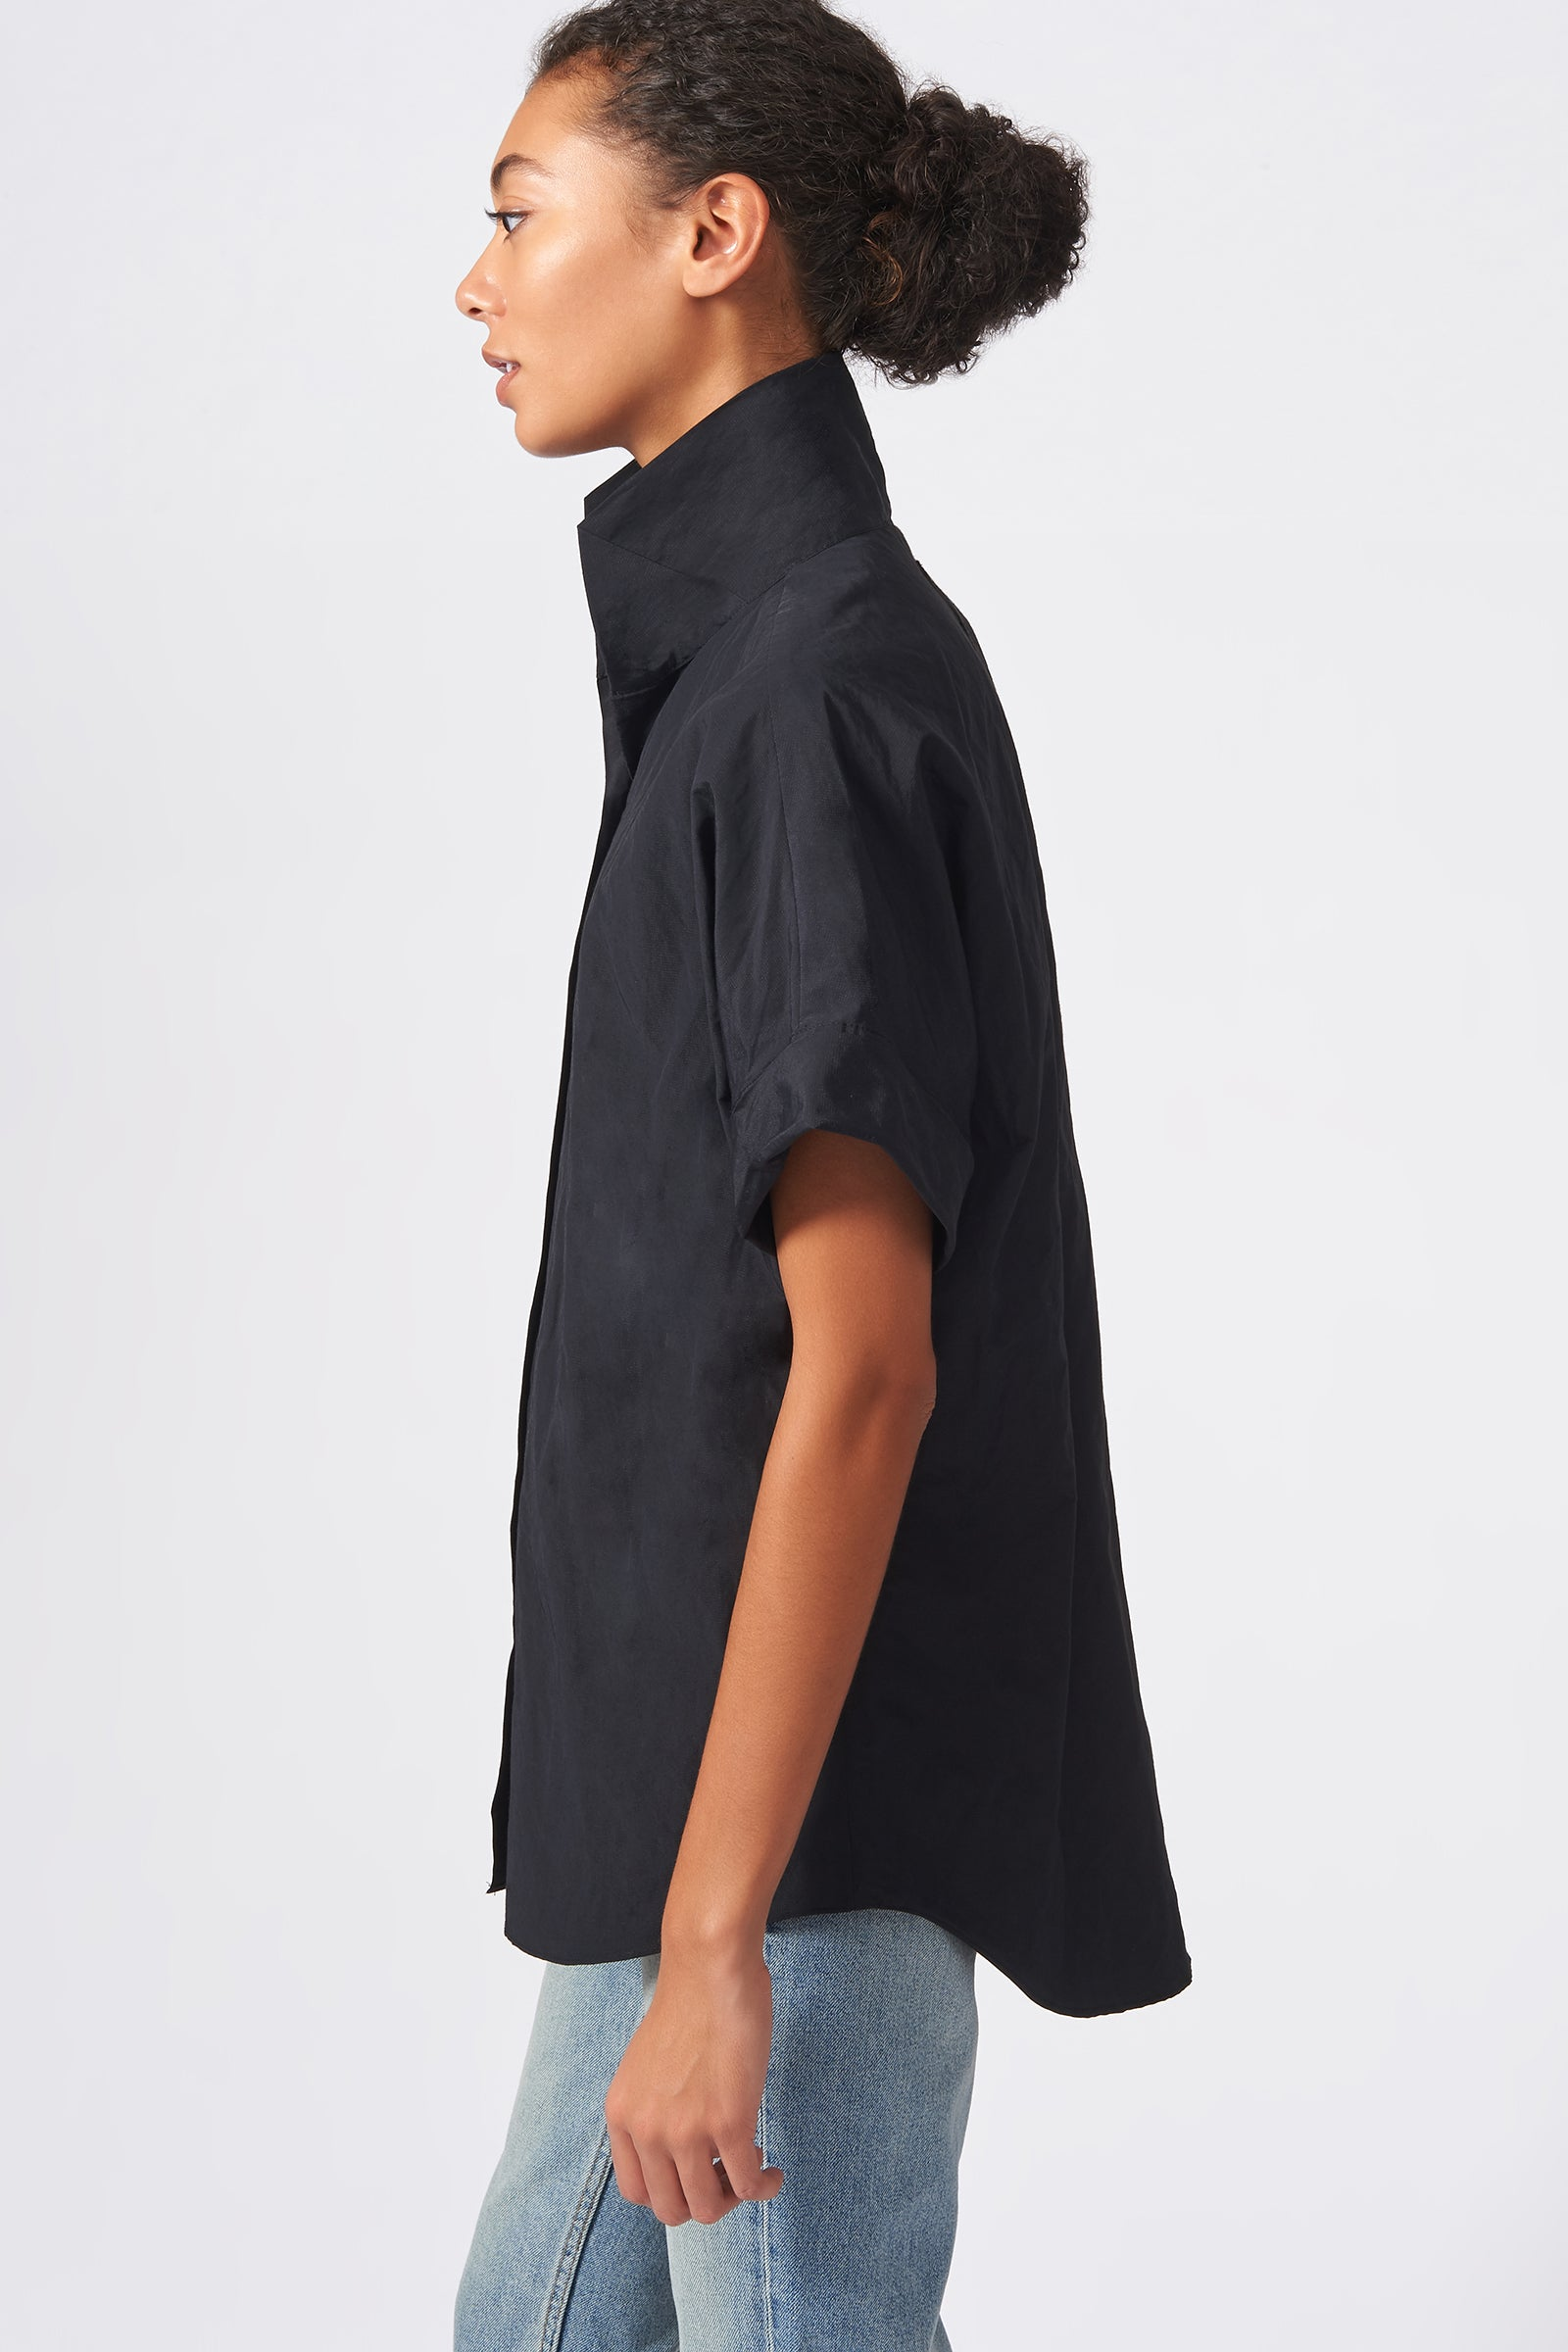 Kal Rieman Kimono Shirt in Black Cotton Nylon on Model Side View